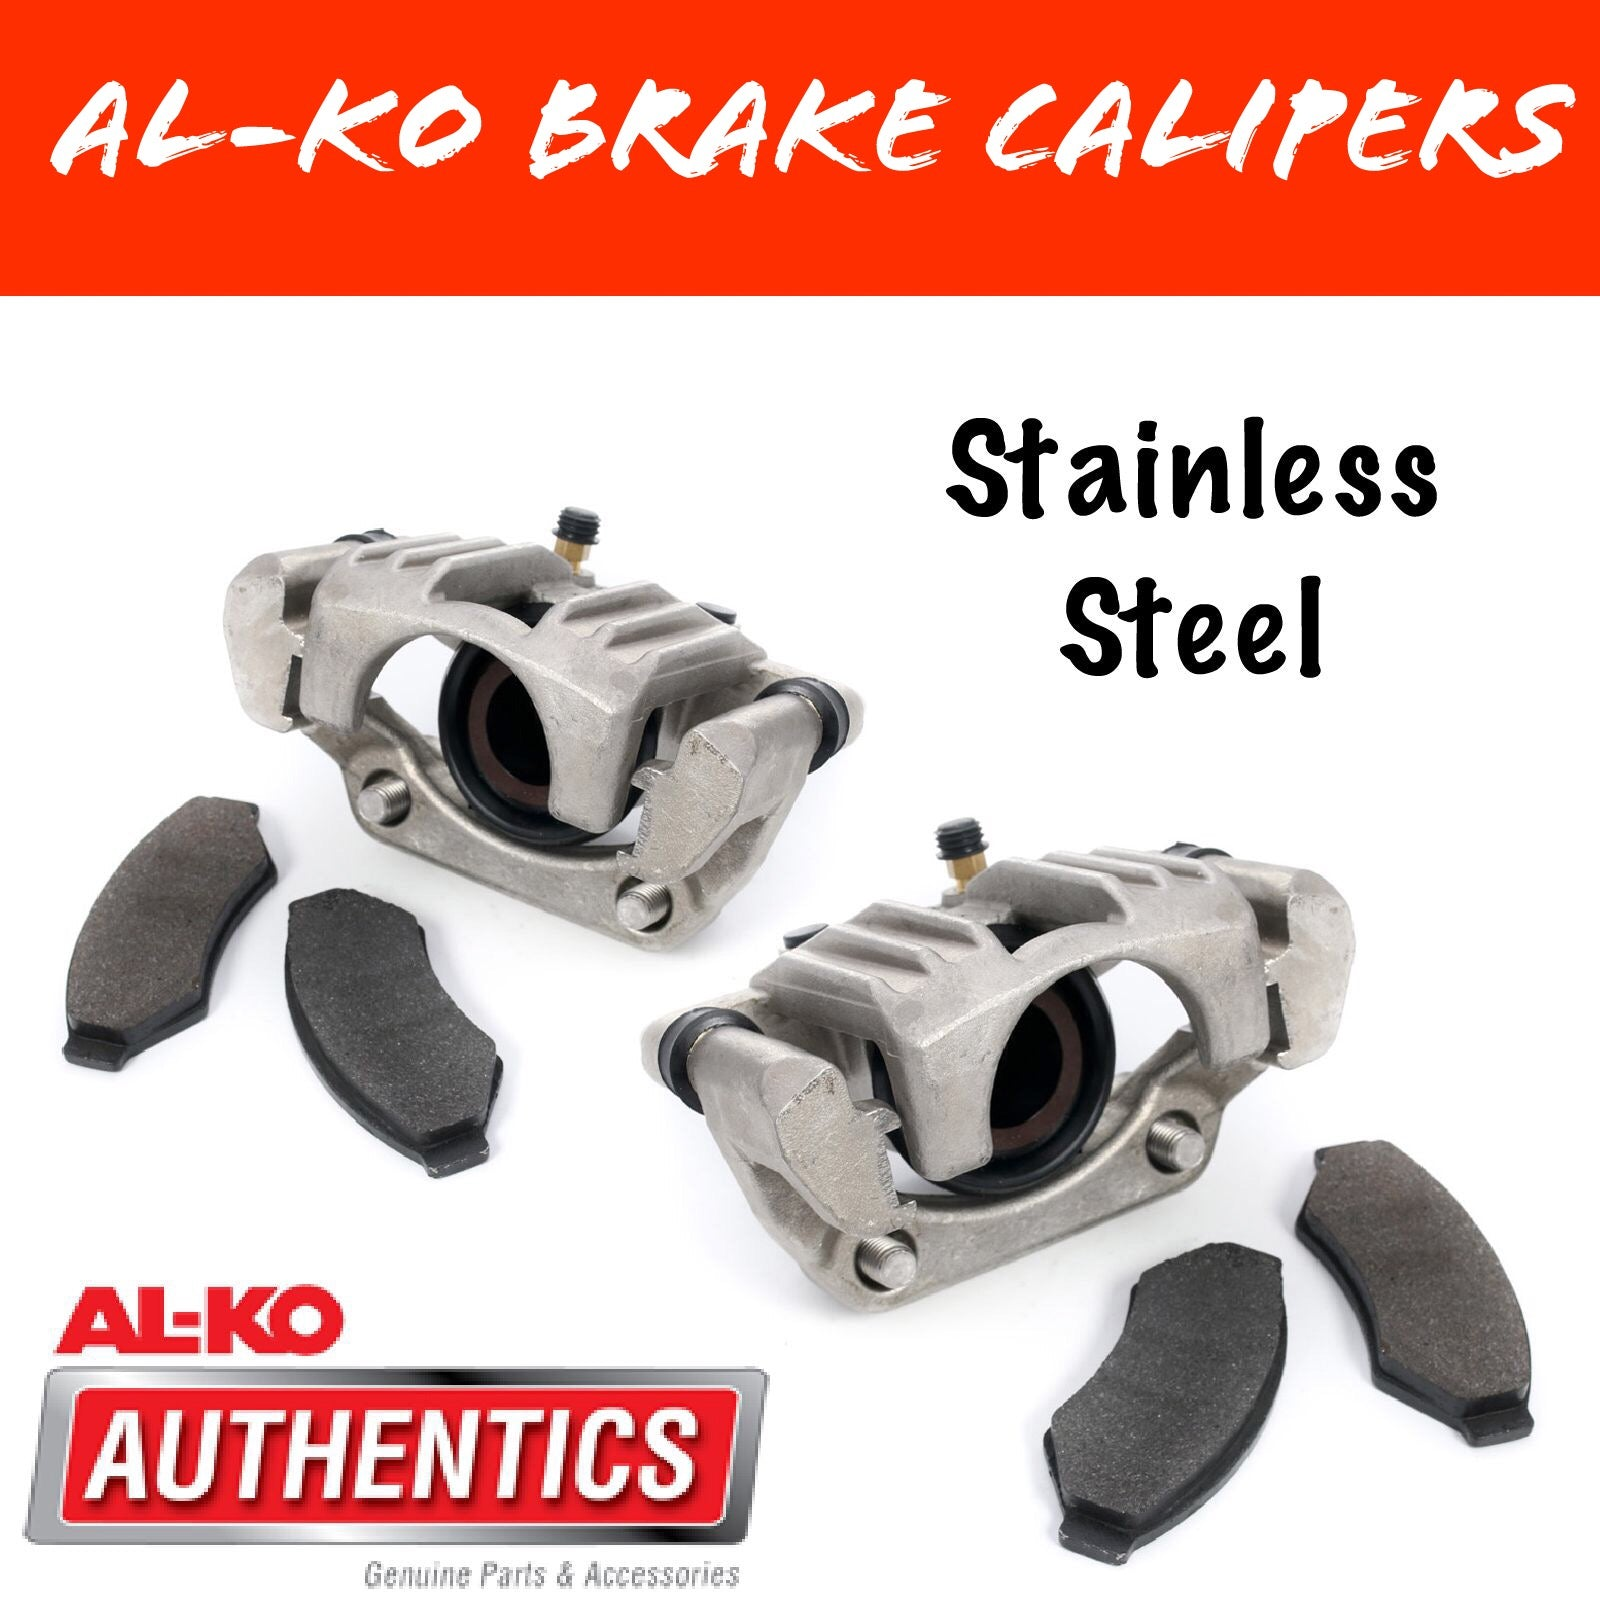 AL-KO STAINLESS STEEL Hydraulic Brake Calipers